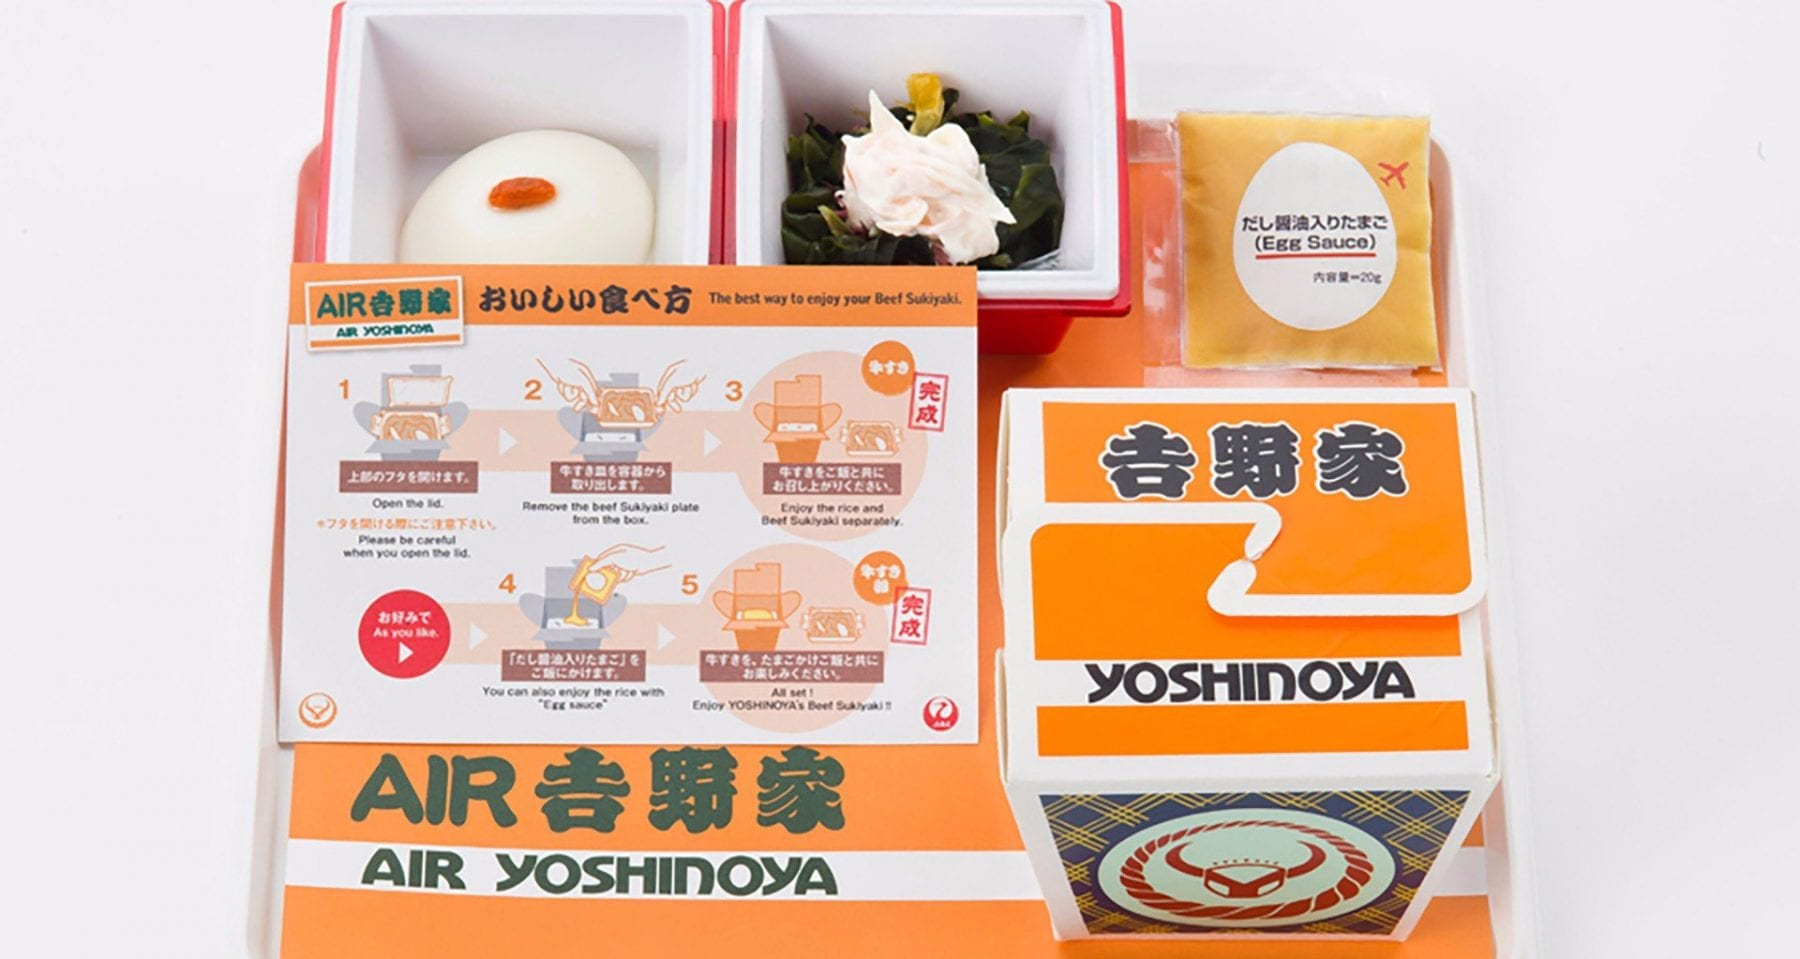 Japan Airlines Air Yoshinoya meal tray